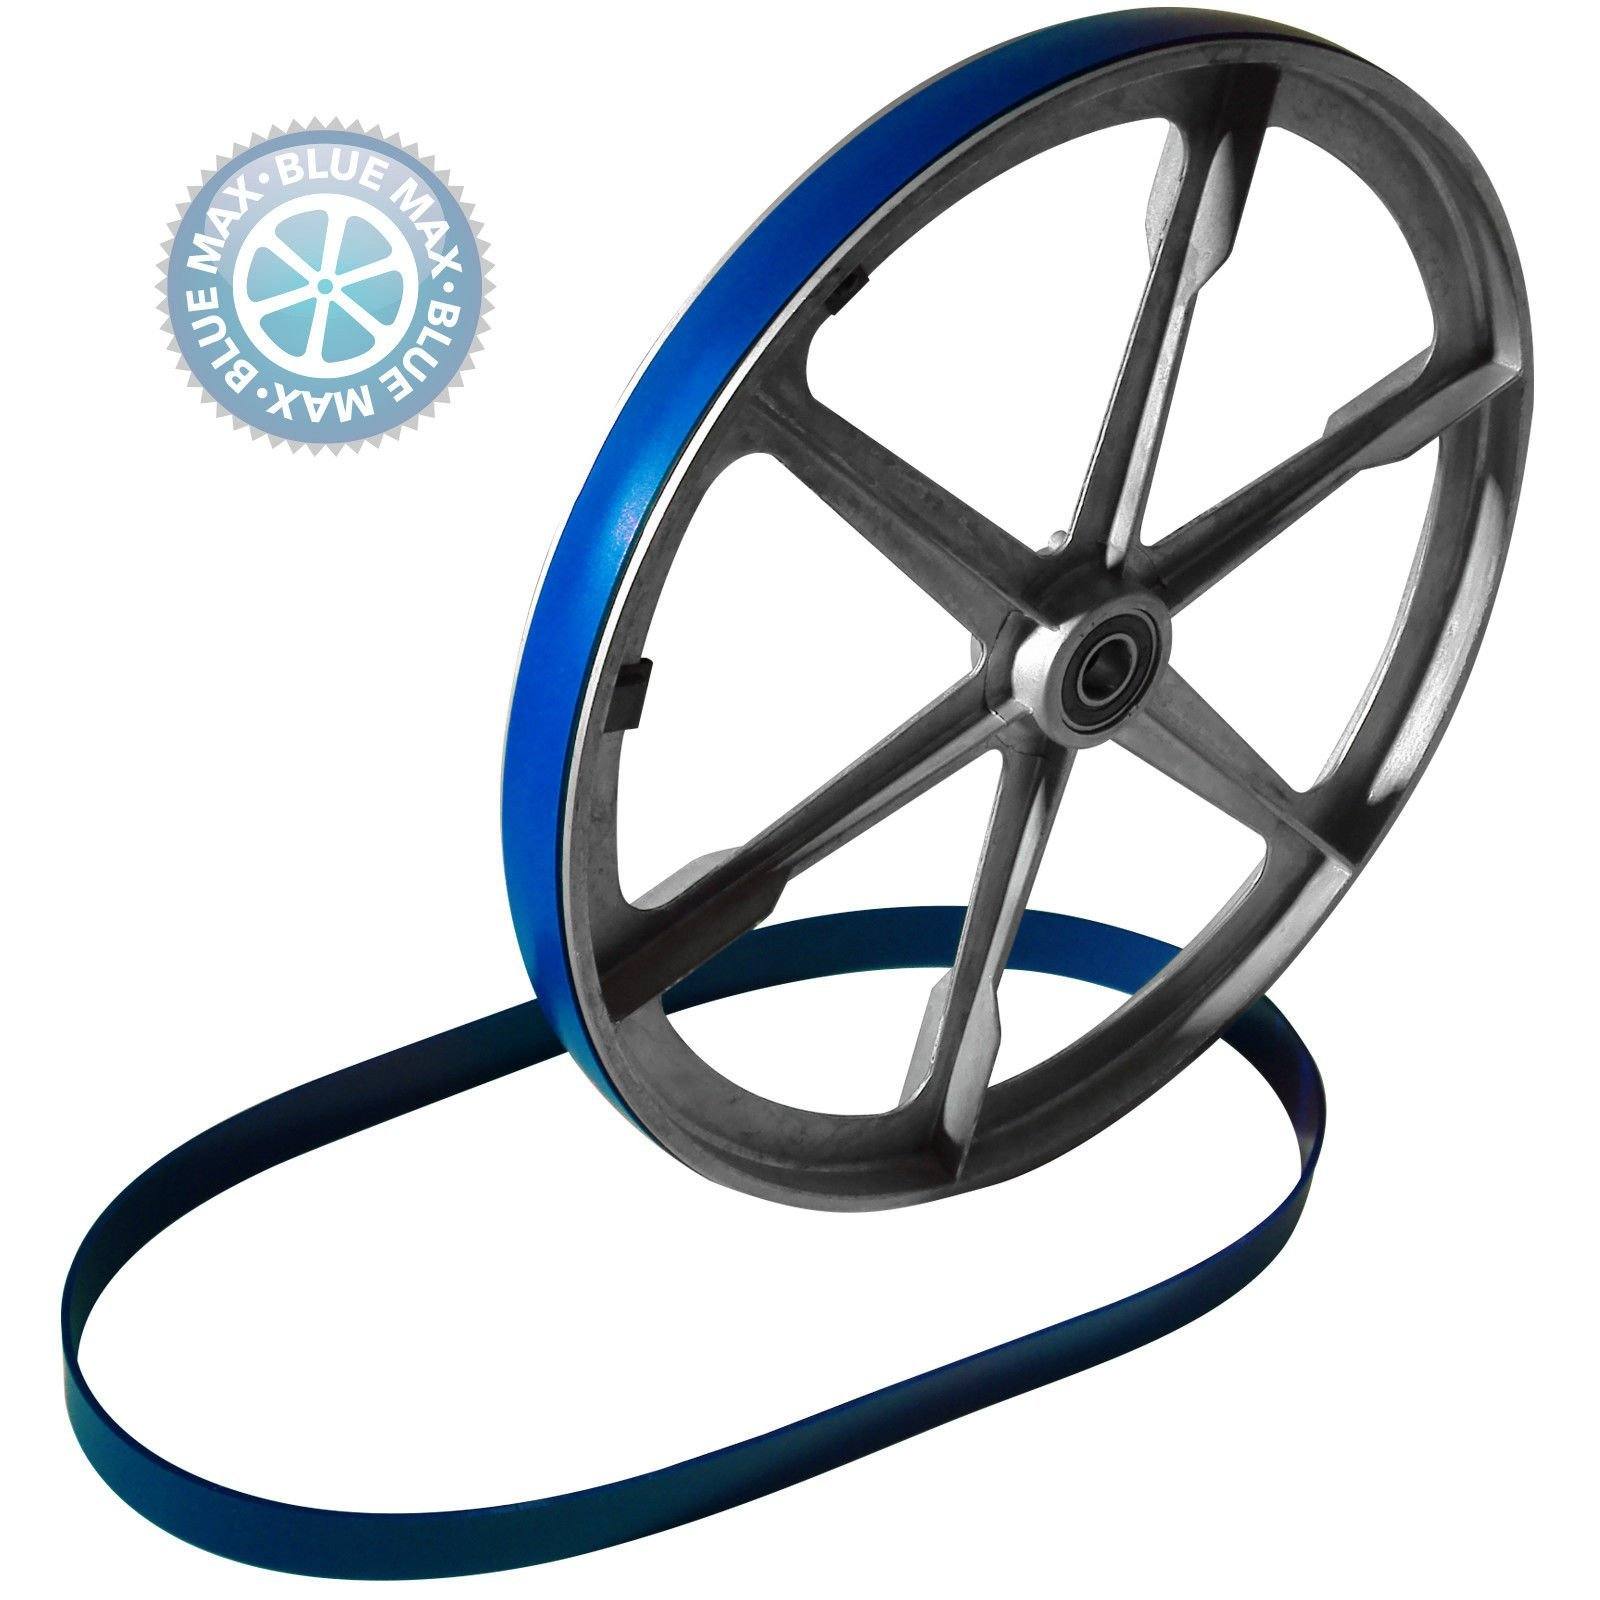 New Heavy Duty Band Saw Urethane Blue Max 2 Tire Set FOR JET JWBS-12 BAND SAW